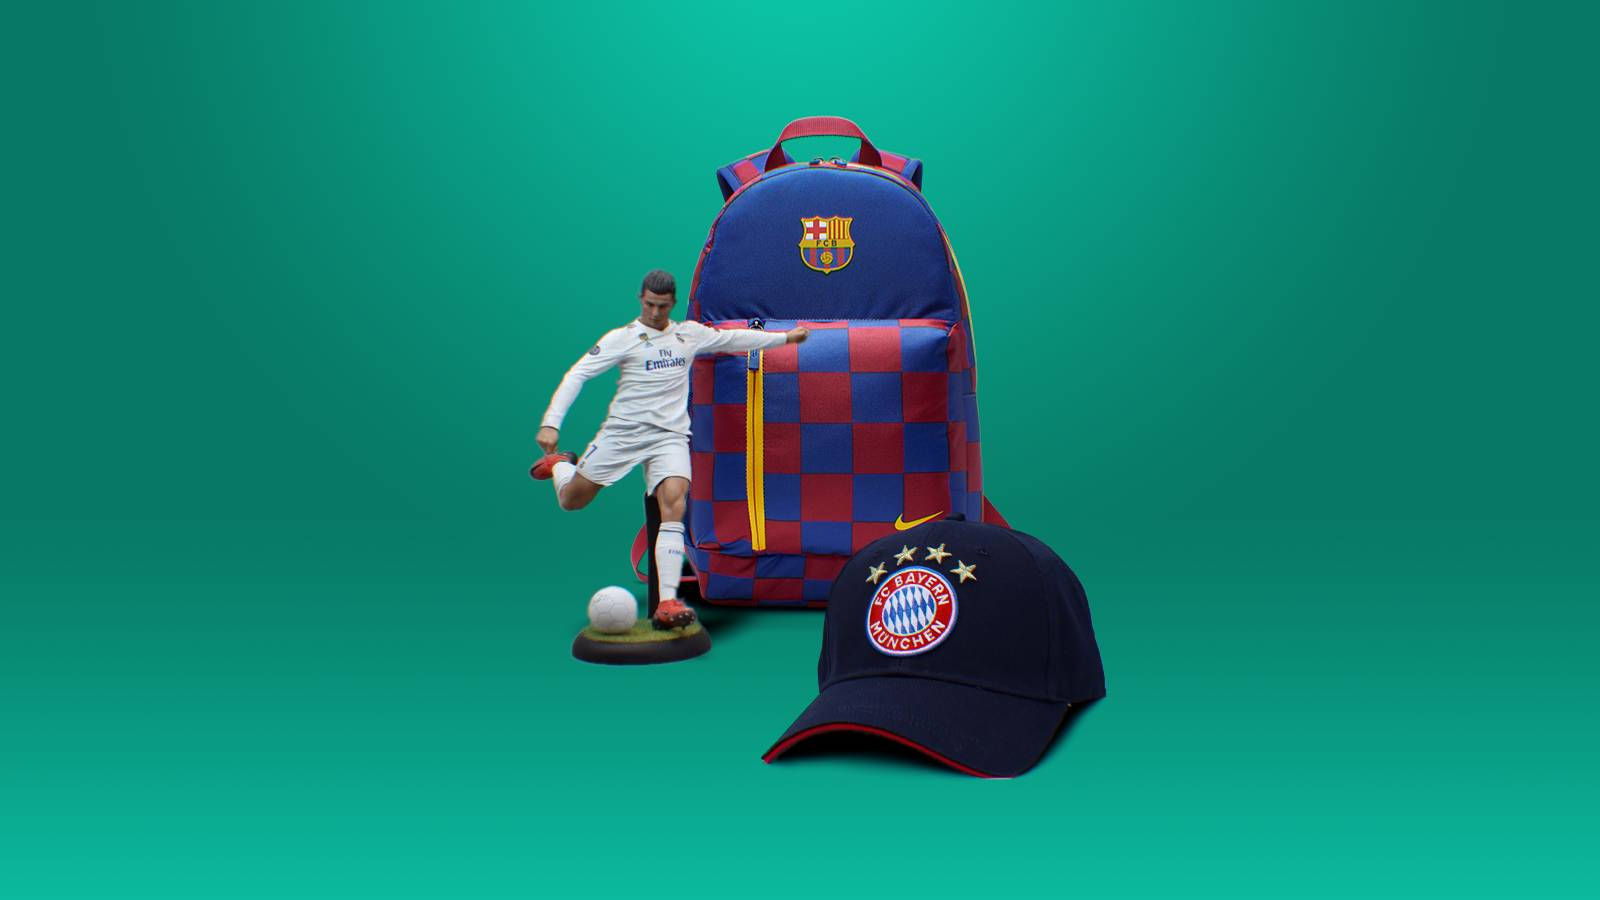 Football (soccer) merch that become phygital (get digital features) thanks to the Caer Sidi service